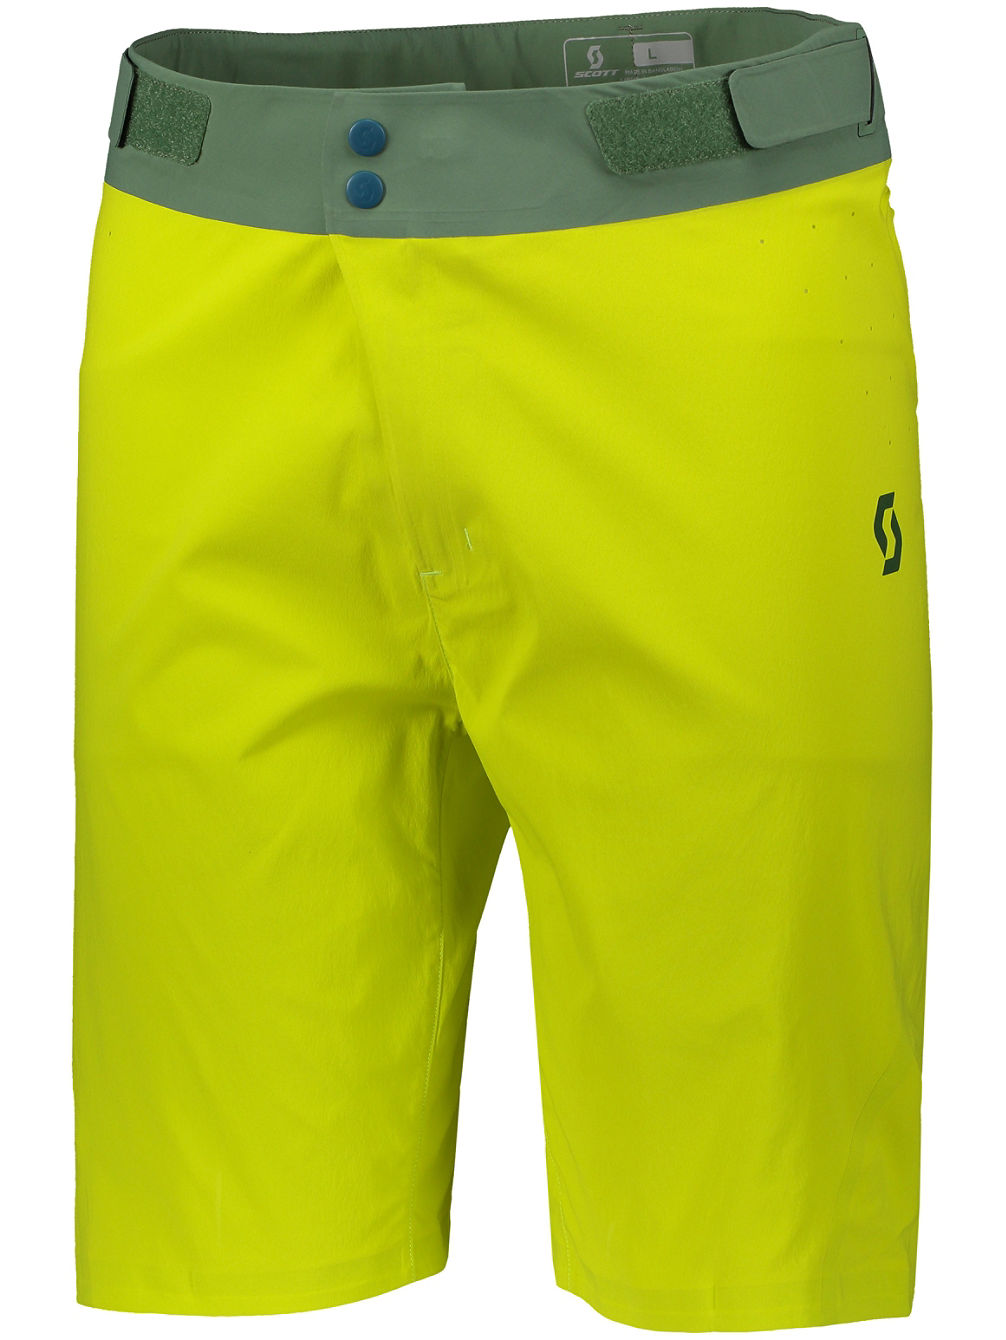 Trail Mtn Aero Shorts